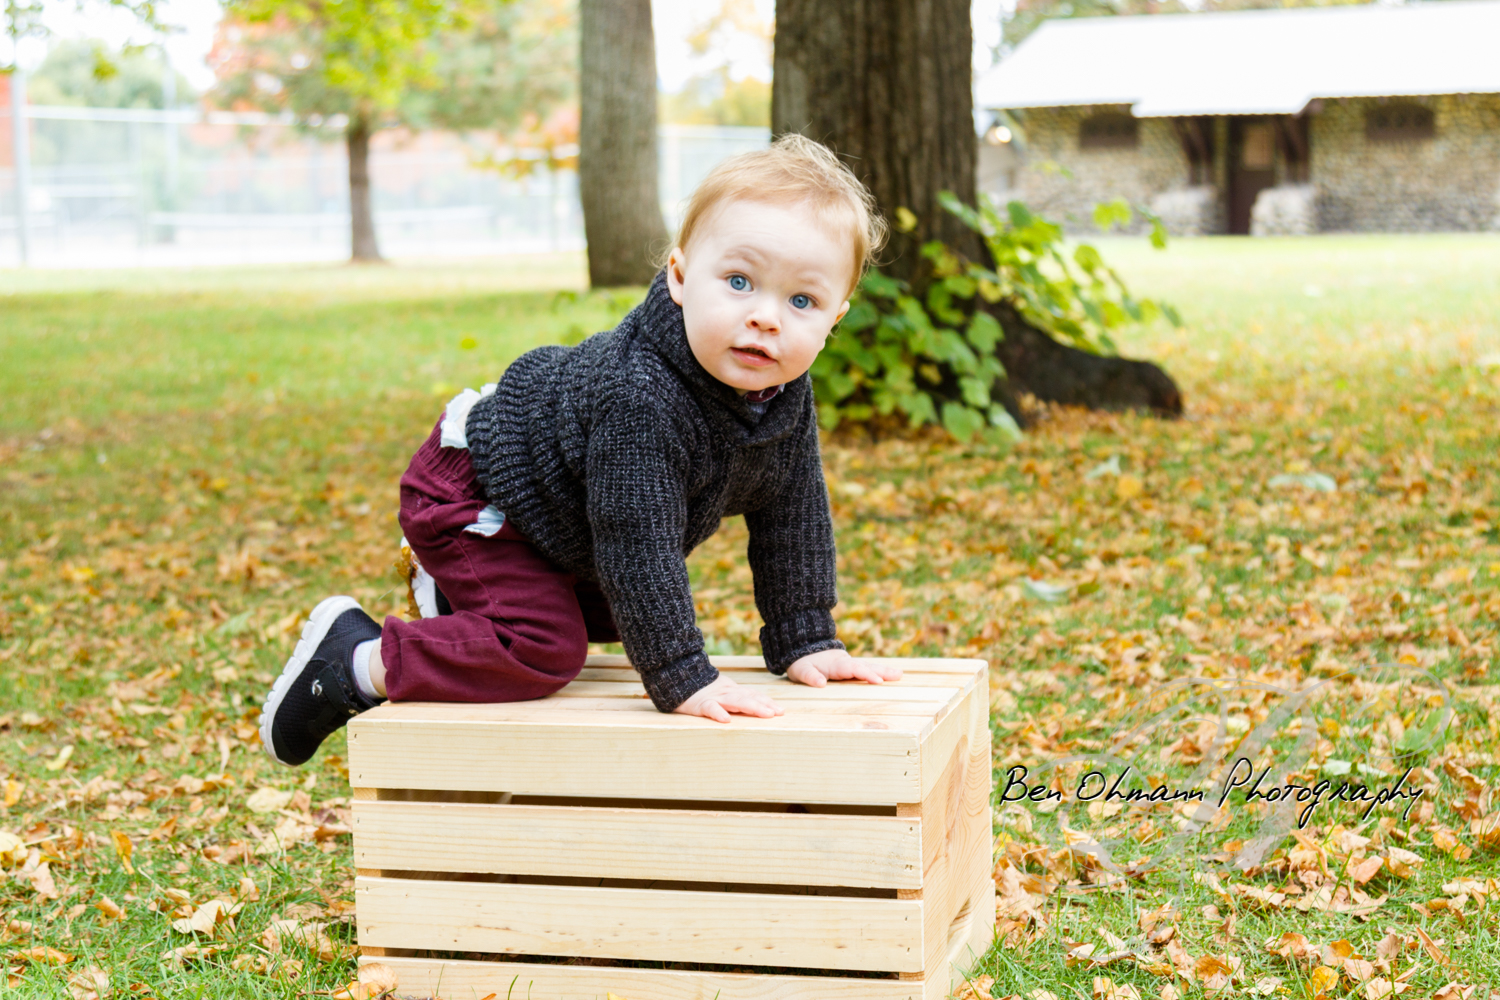 MacDougall Family Session-20180930_015.jpg